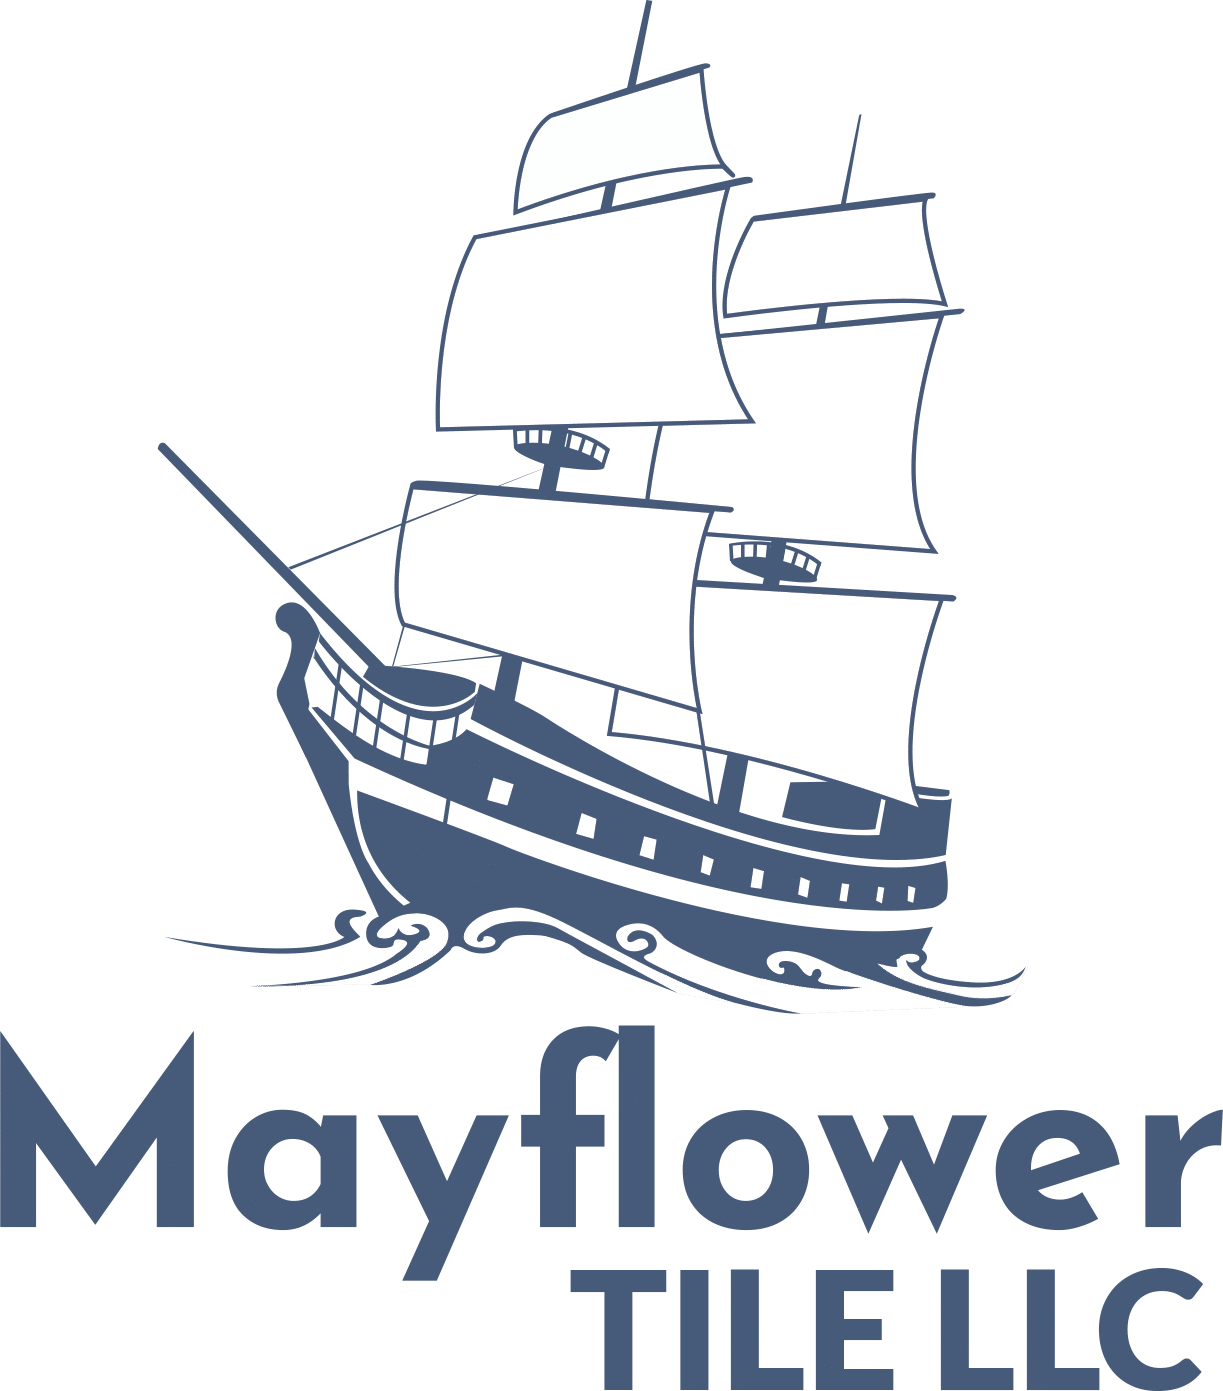 Mayflower Tile